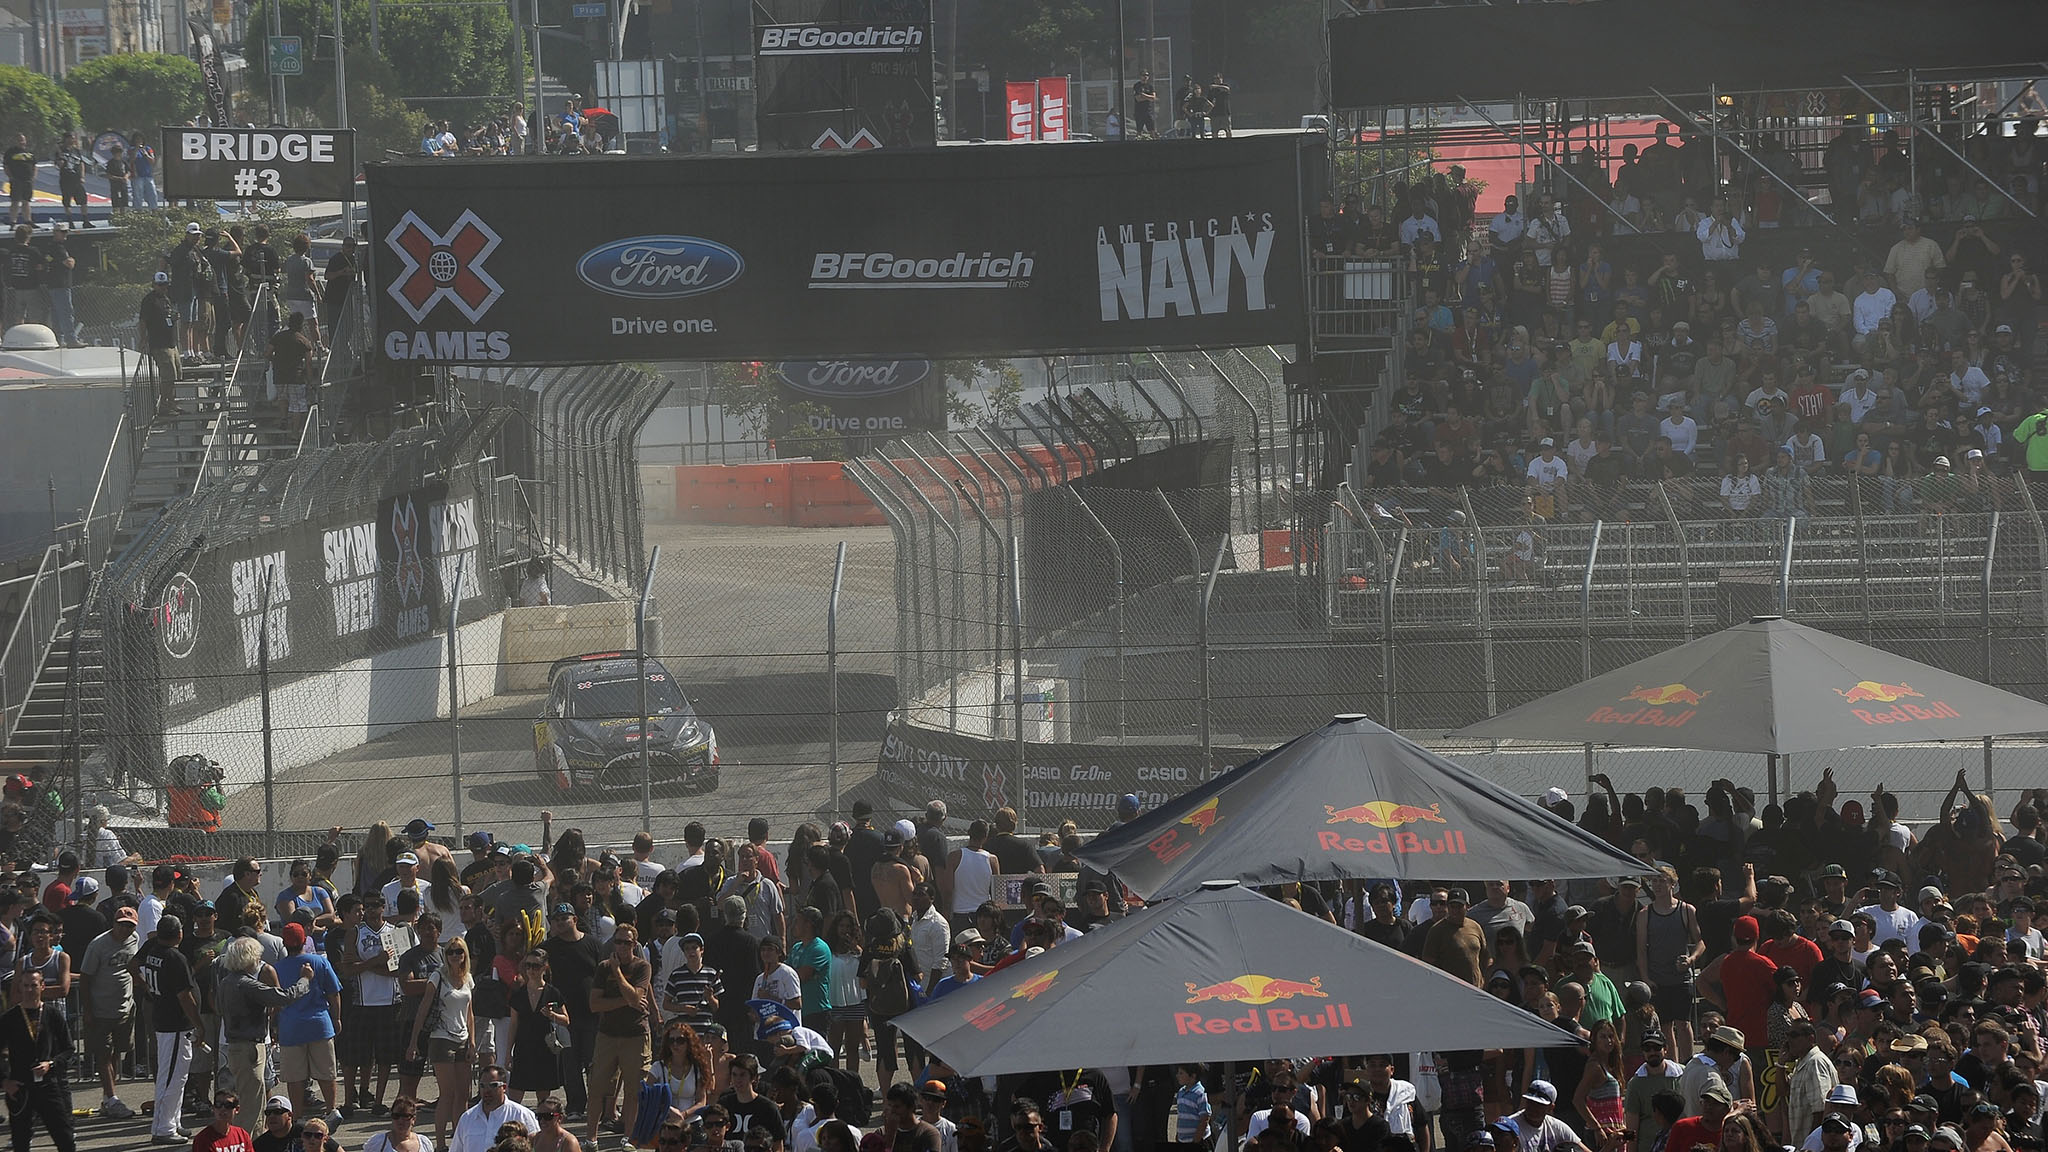 Moto X athlete and Metal Mulisha co-founder Brian Deegan won the RallyCross race at X Games L.A. in 2011. He thinks racers should be forced to earn their spots in X Games events.